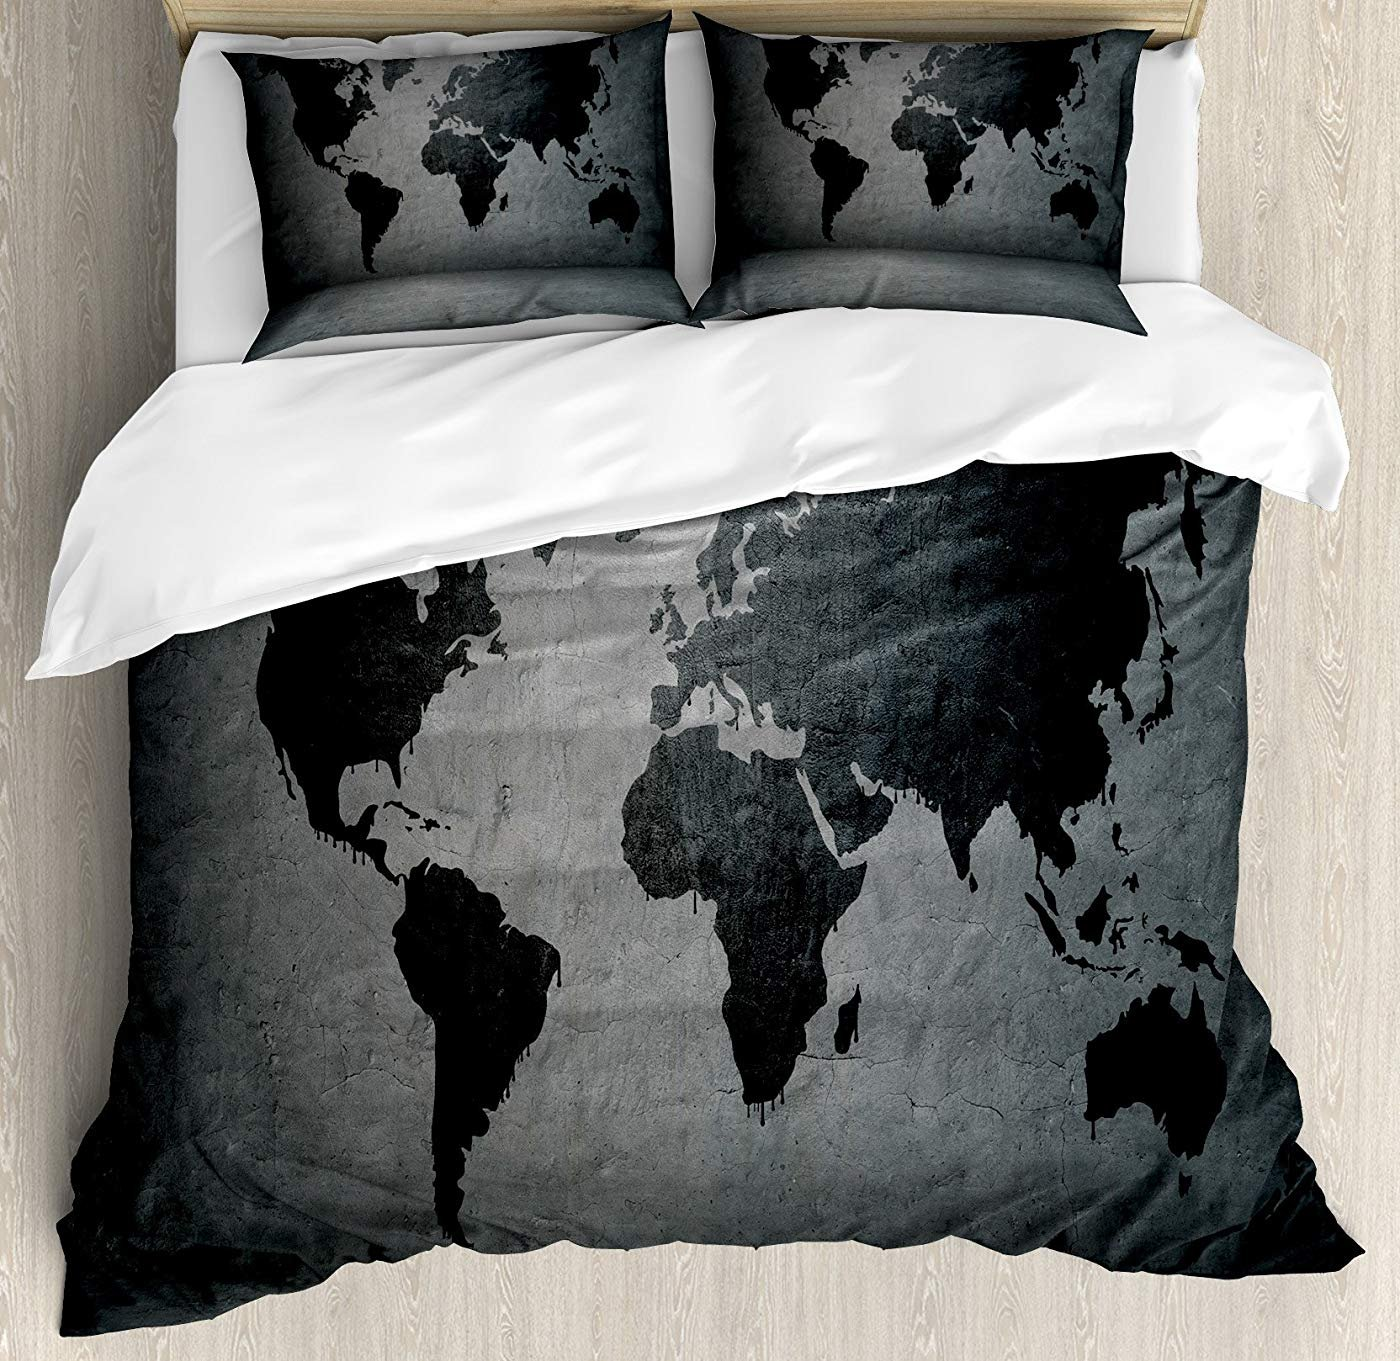 LEO BON Dark Grey Duvet Cover Set Twin Size, Black Colored World Map on Concrete Wall Image Urban Structure Grungy Rough Look Floral Duvet Cover and Pillow Shams Bed Set, Grey Black